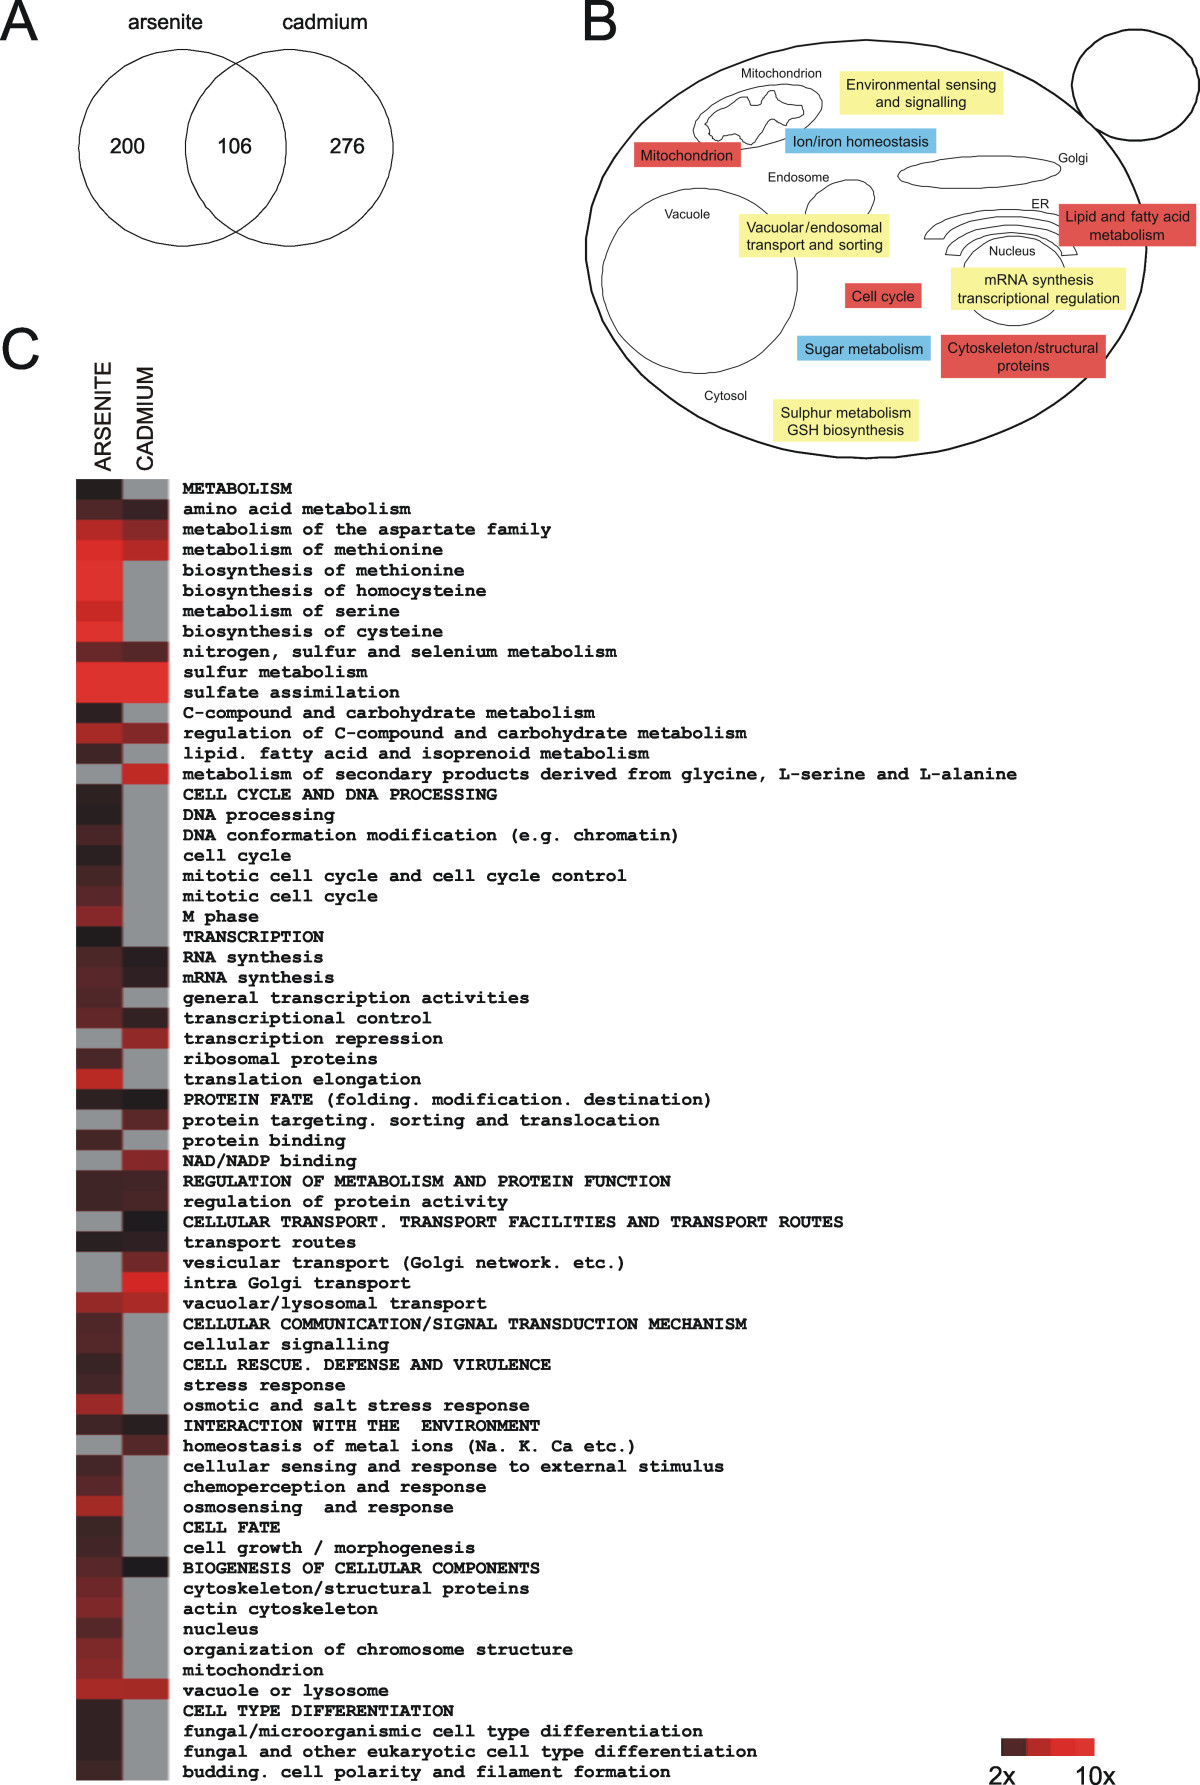 http://static-content.springer.com/image/art%3A10.1186%2F1471-2164-10-105/MediaObjects/12864_2008_Article_1989_Fig1_HTML.jpg